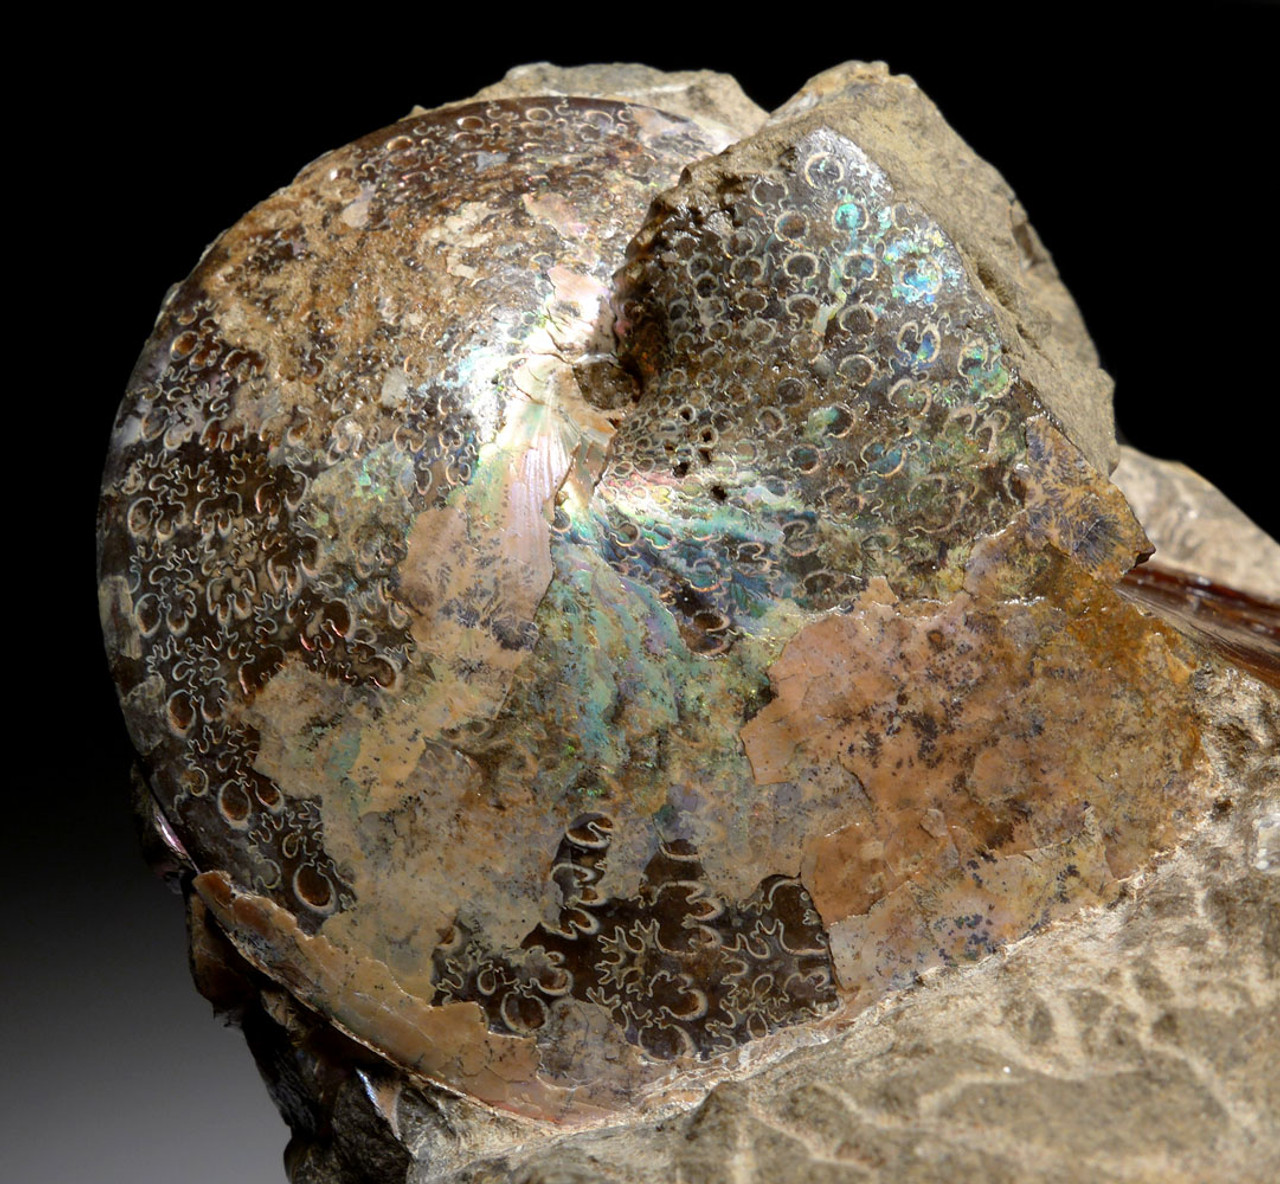 IRIDESCENT PIERRE SHALE AMMONITE FOSSILS FROM SOUTH DAKOTA WITH GEM COLORS  *AMSD1